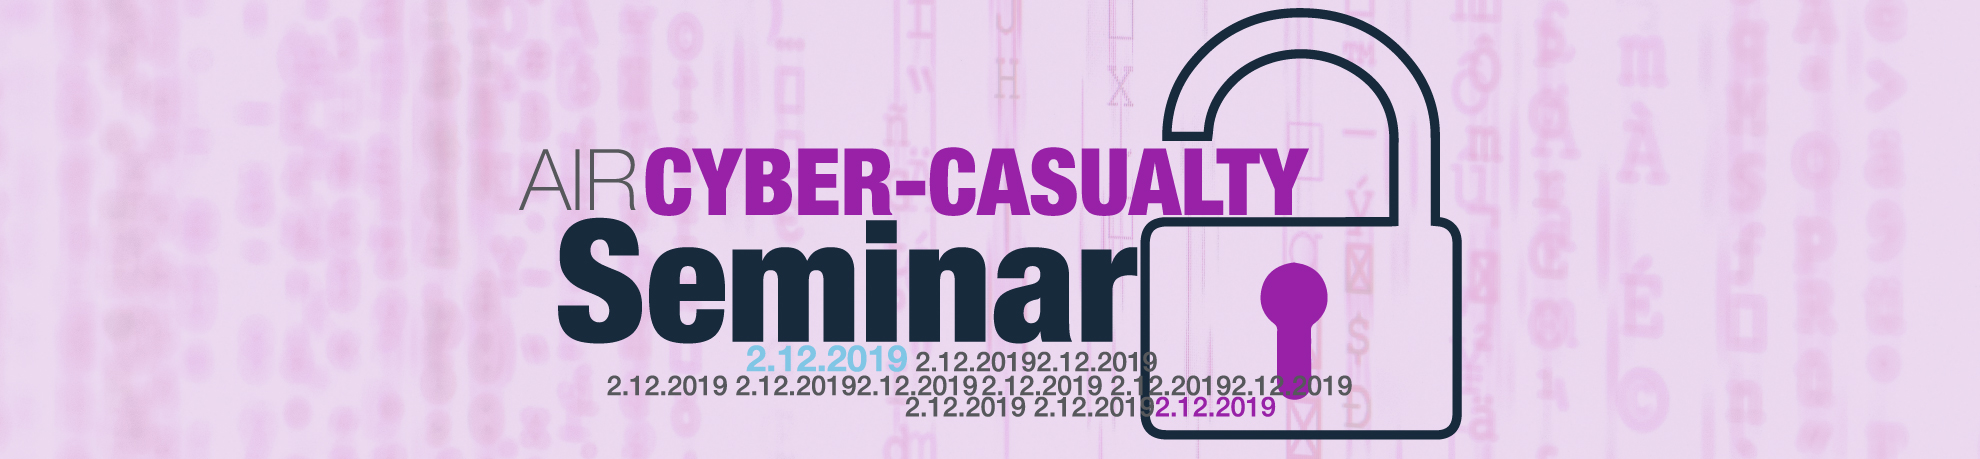 2019 AIR Cyber-Casualty Seminar